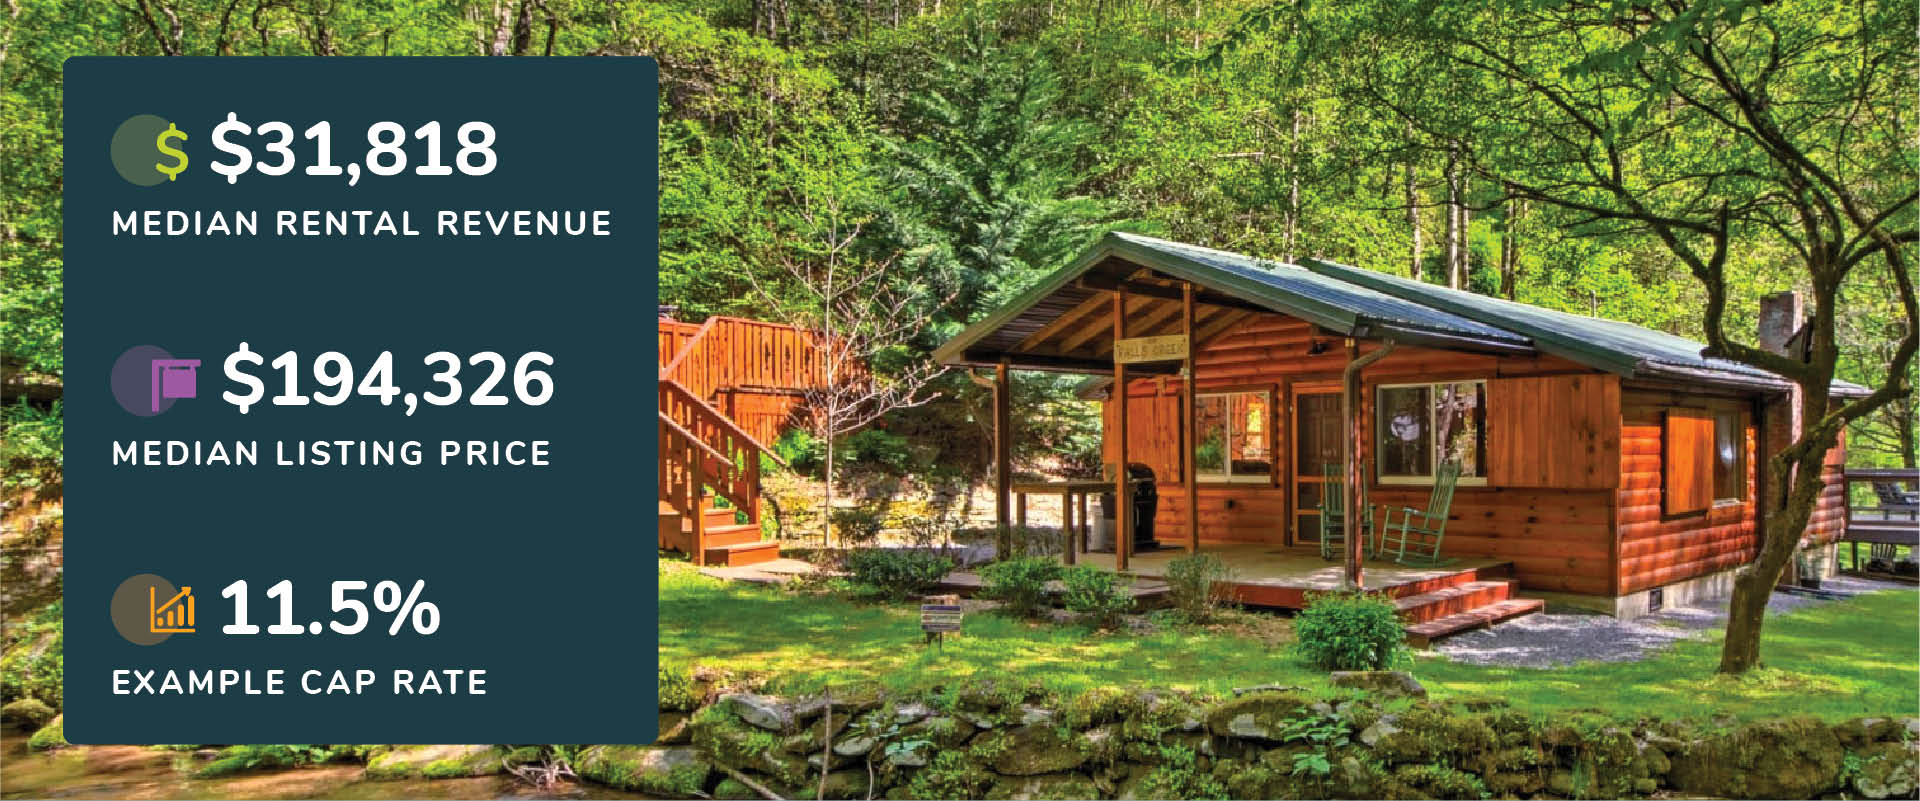 Graphic showing Bryson City, North Carolina median rental revenue, listing price, and cap rate with a picture of a log cabin near a creek in the woods.